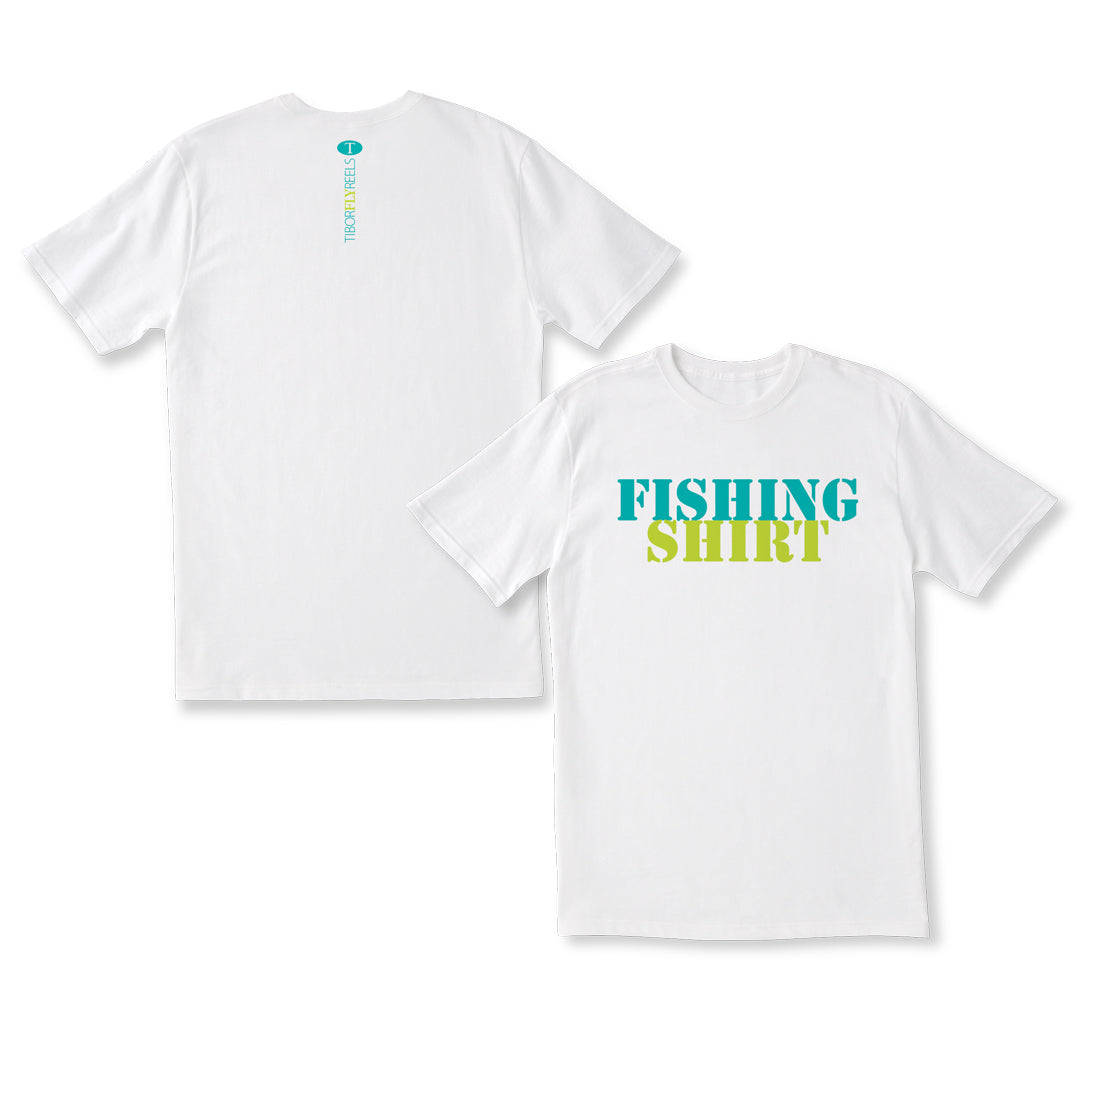 Fishing Shirt Tee: White